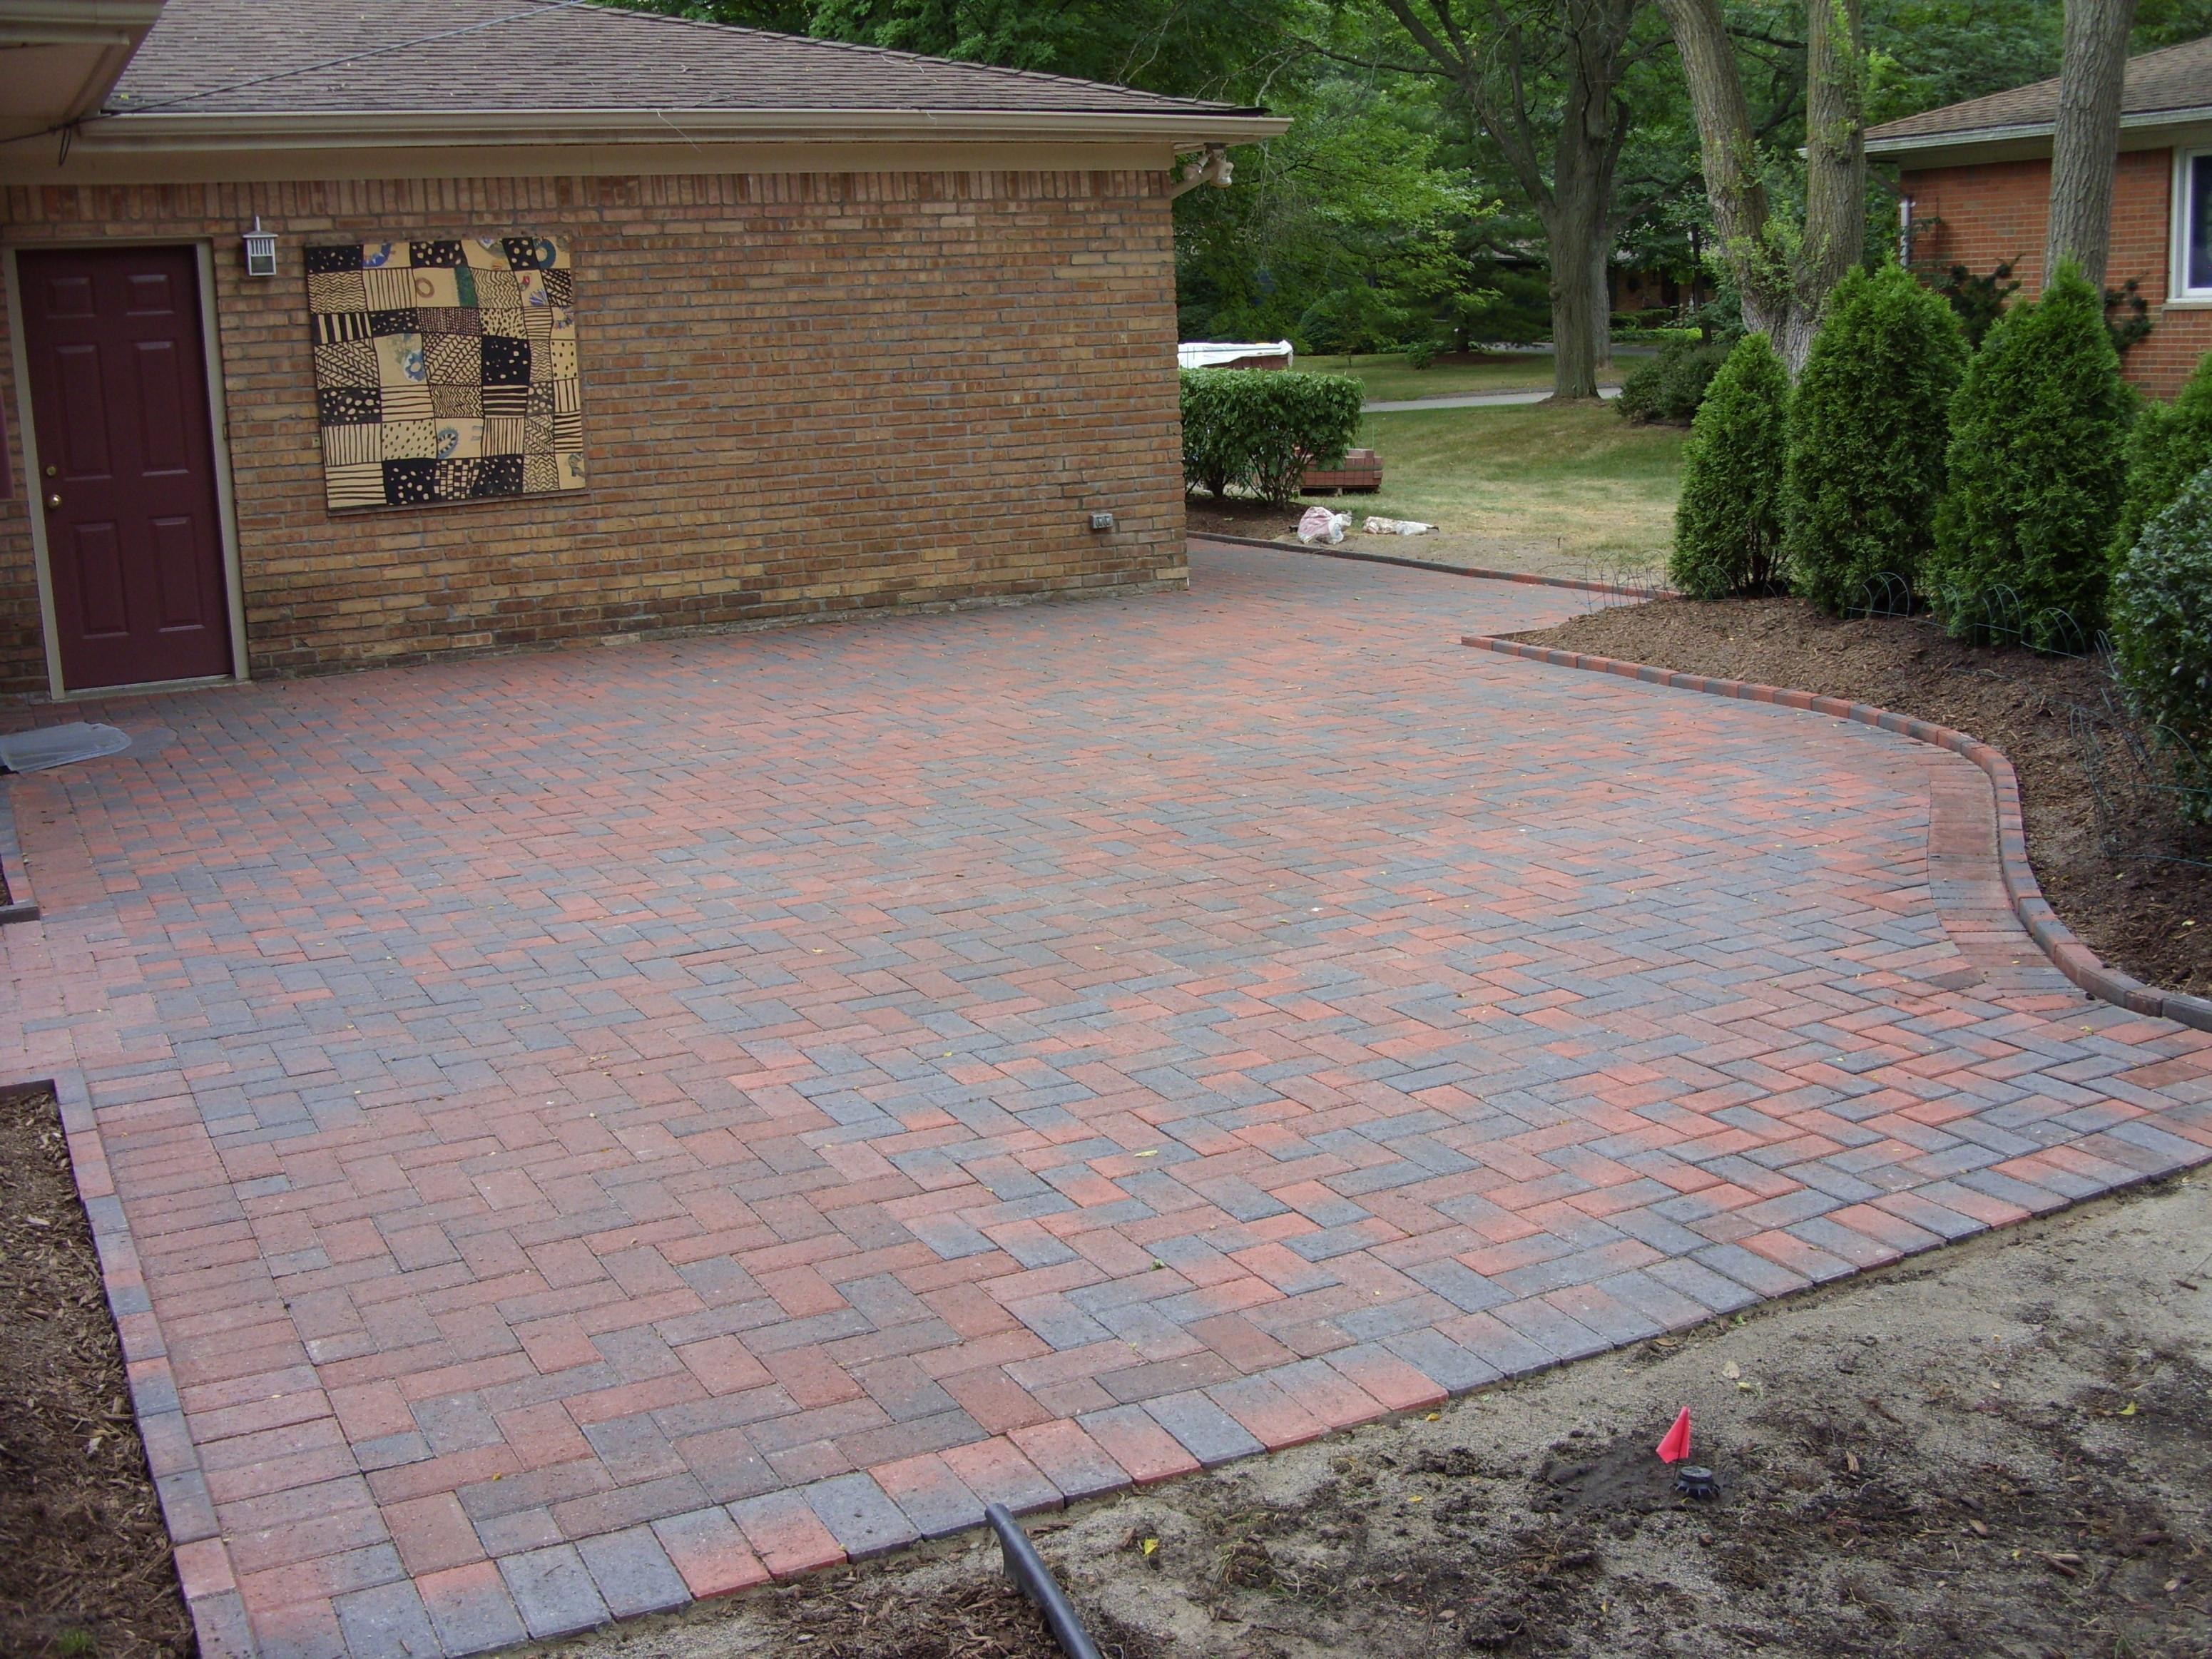 Comfy Brick Patio Ideas That Will Add Special Charm To Any Home